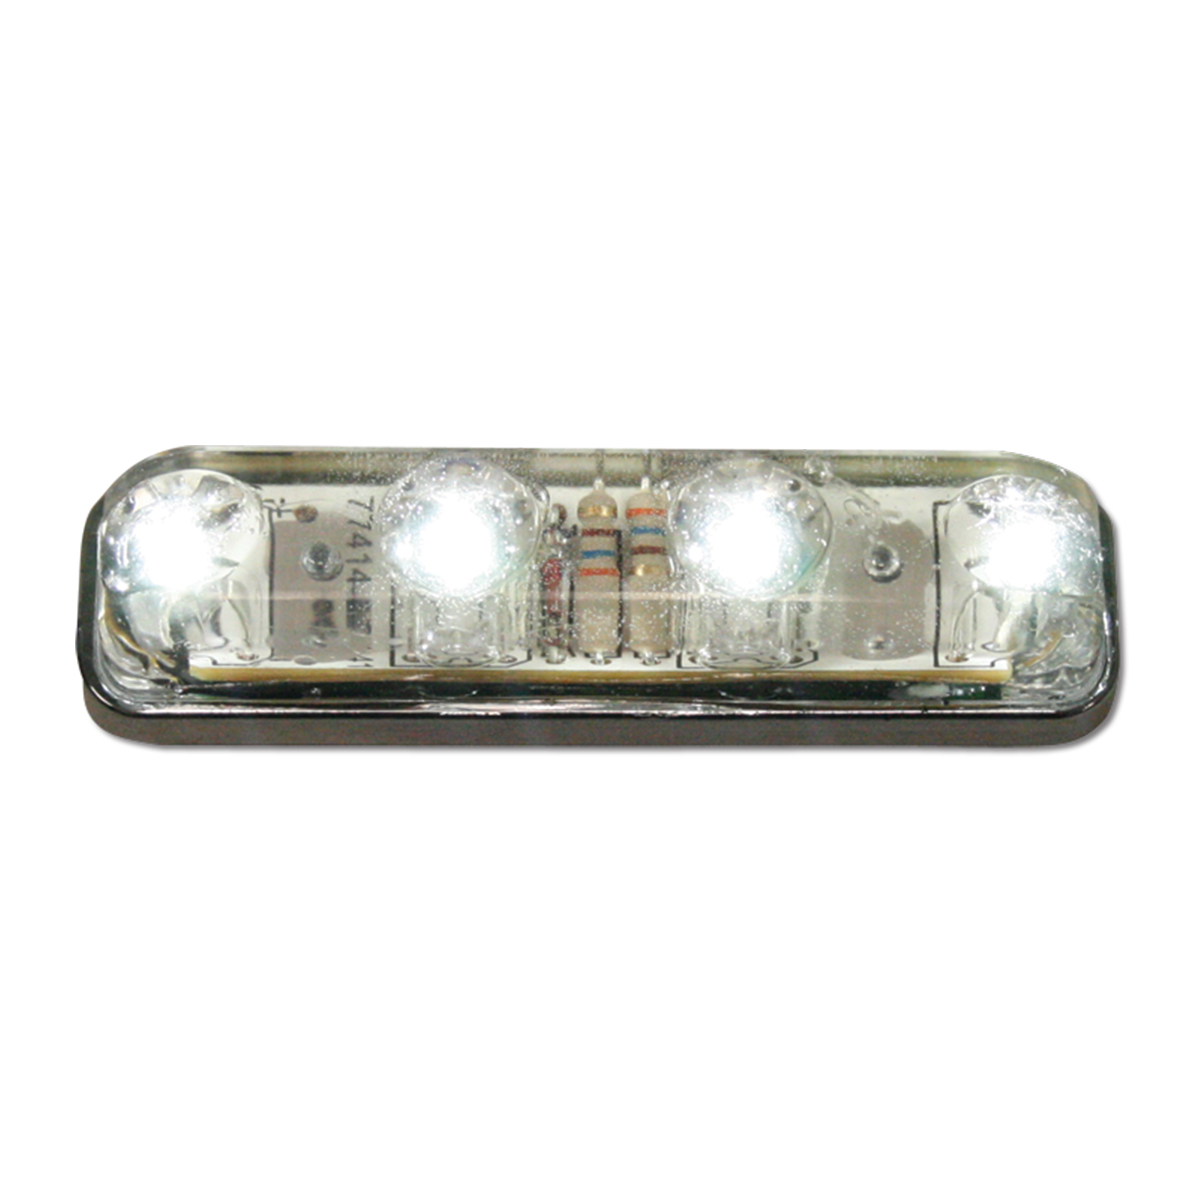 77144 Small Thin Lin Surface Mount LED Light in White/Clear